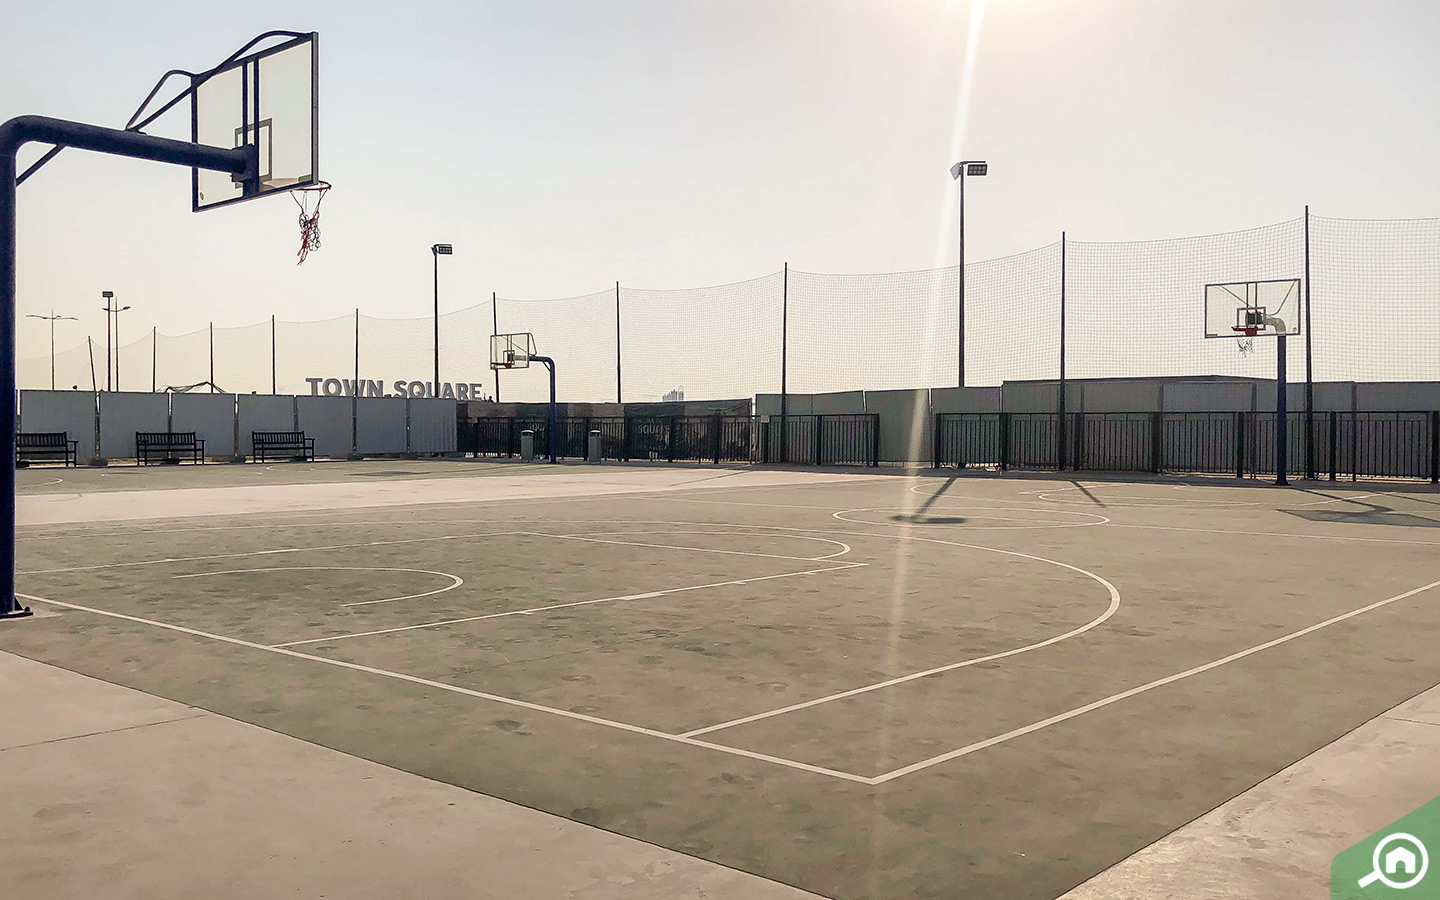 Town Square basketball court